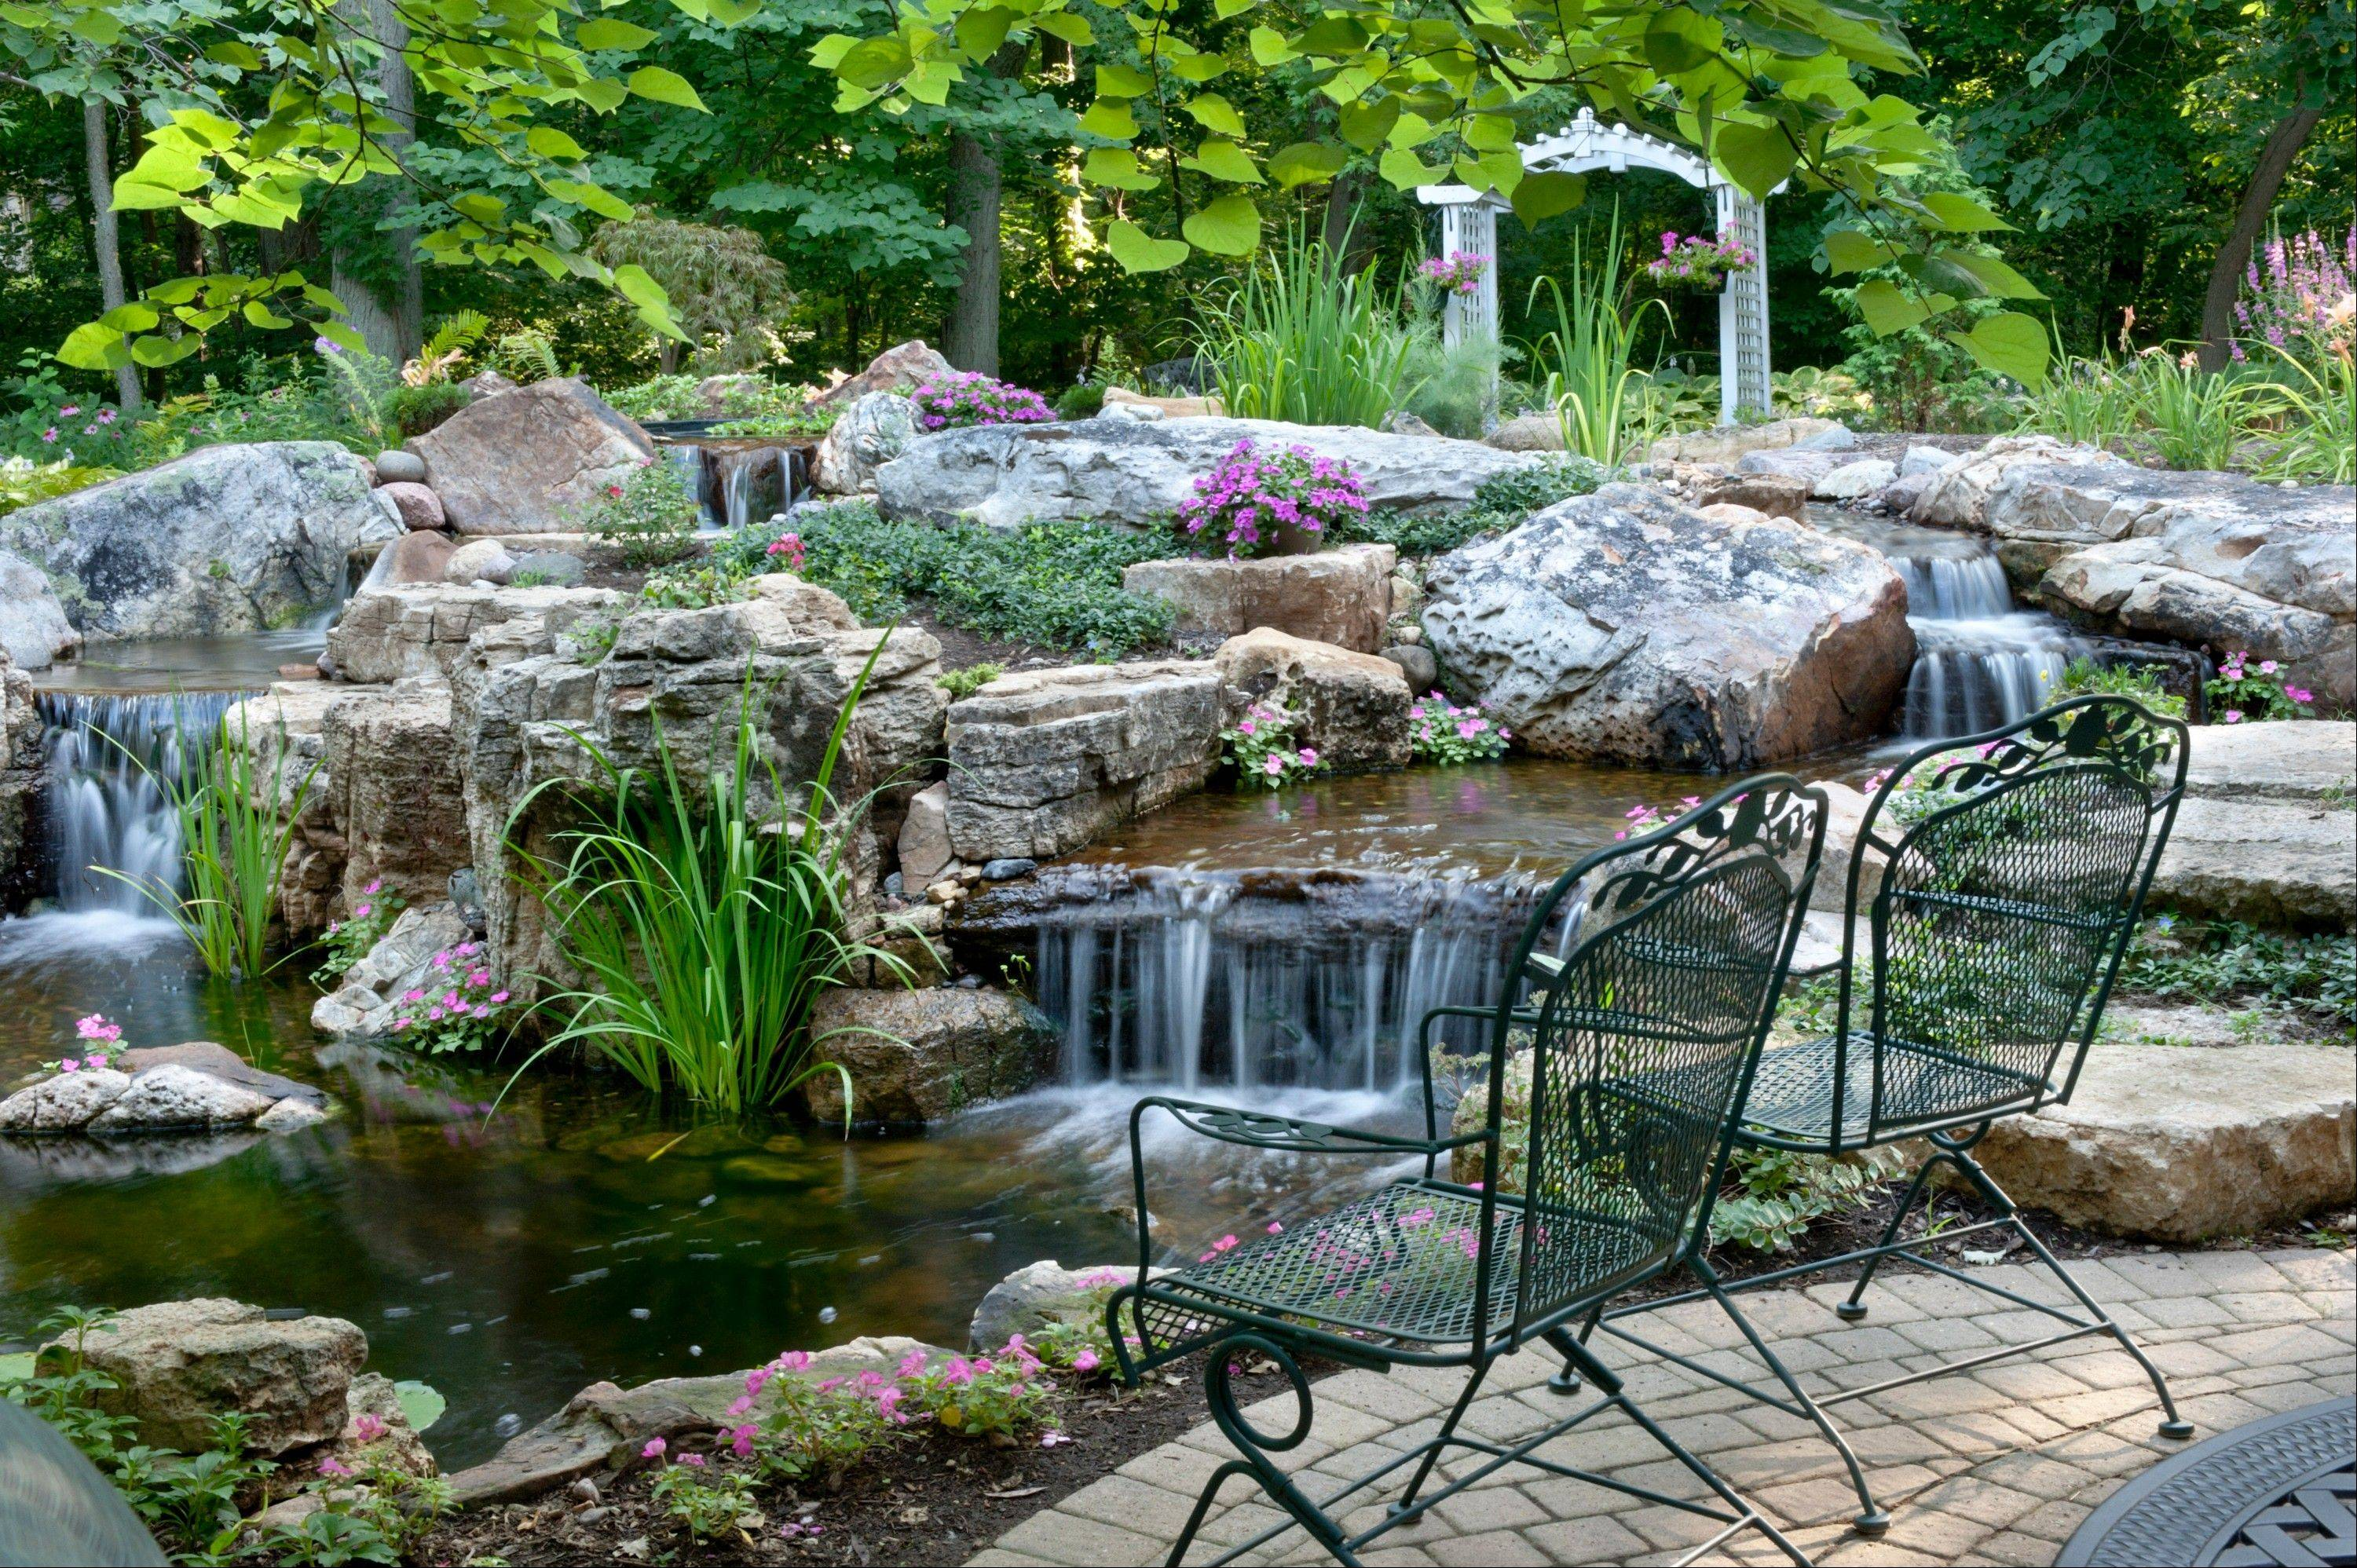 Some homeowners want elaborate ponds with waterfalls, or simple fountains installed with their landscaping.